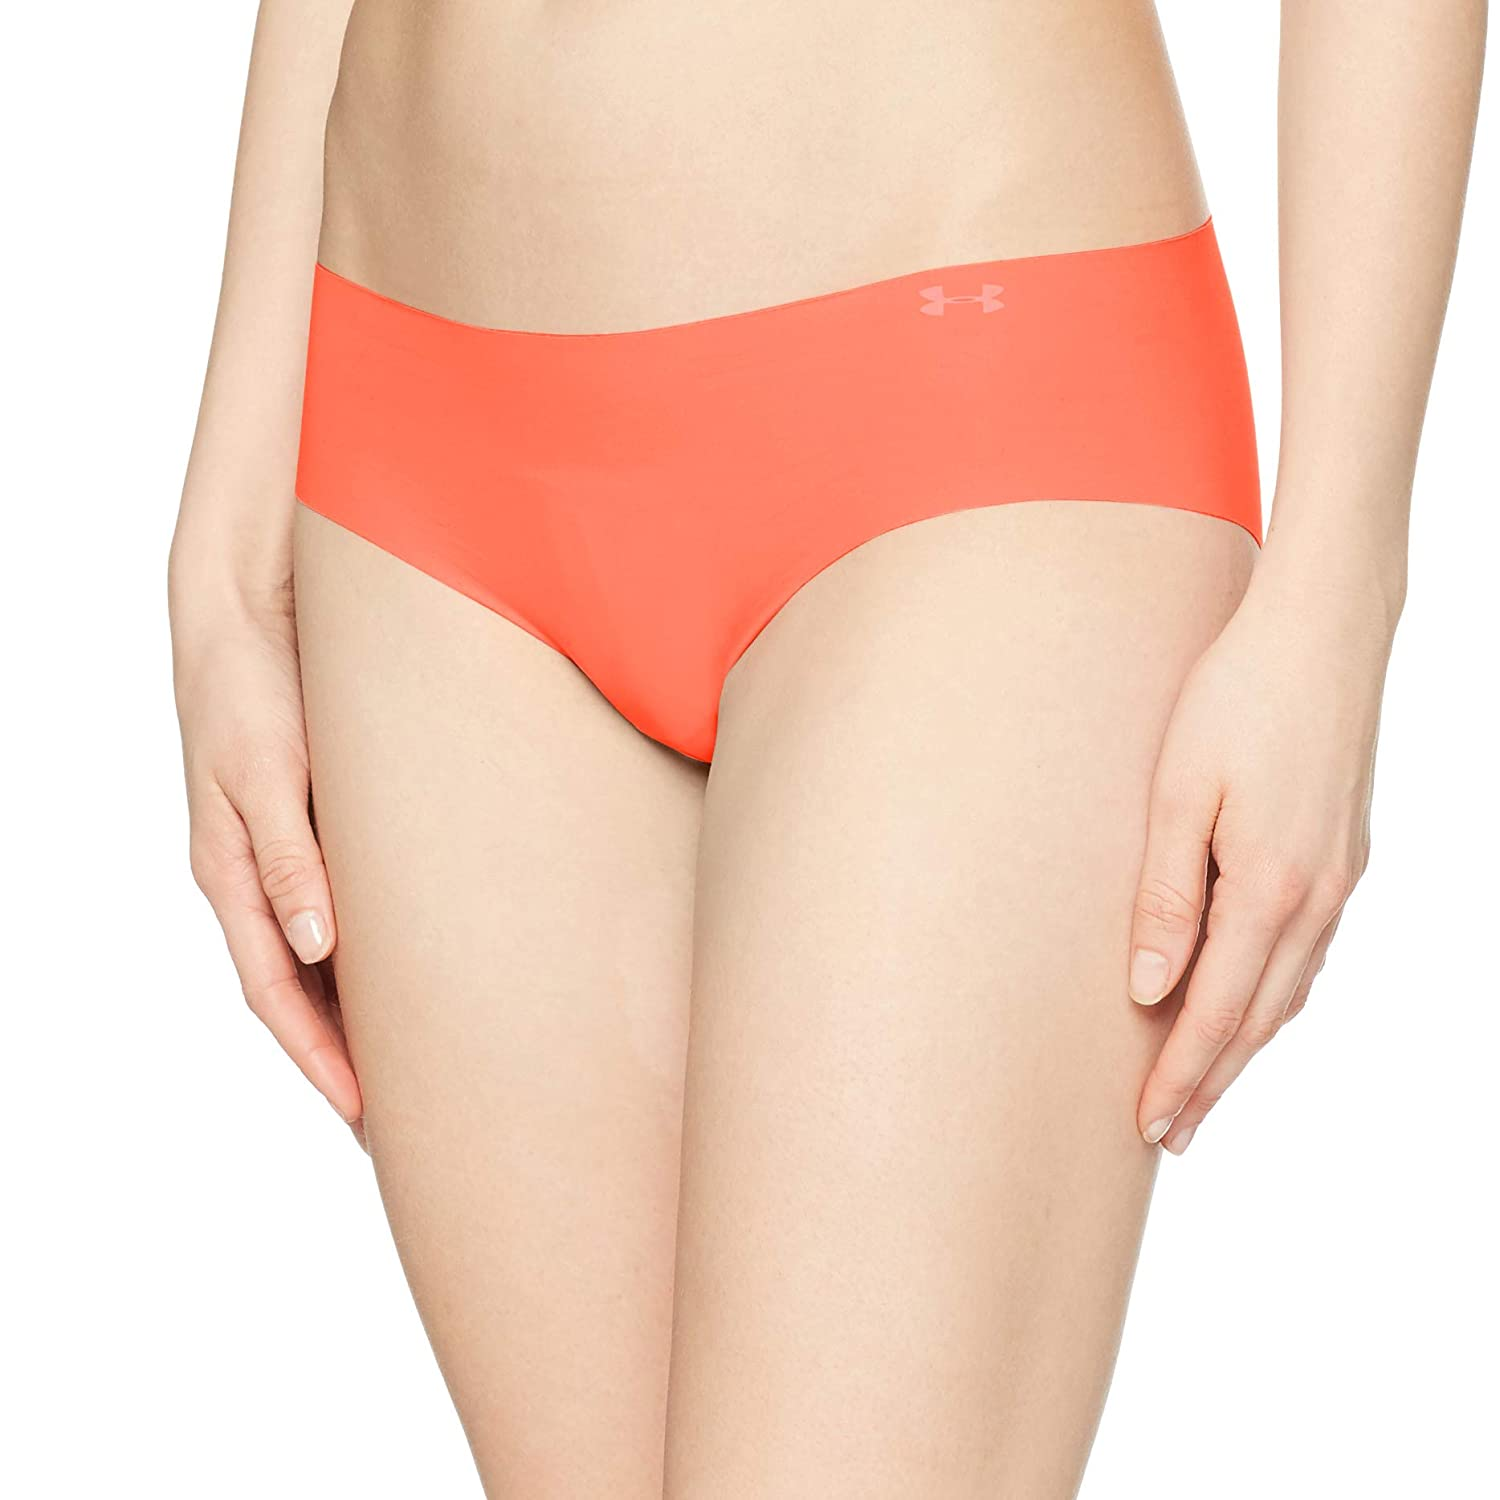 1c5b834c34 Amazon.com: Under Armour Women's Pure Stretch Hipster: Under Armour:  Clothing